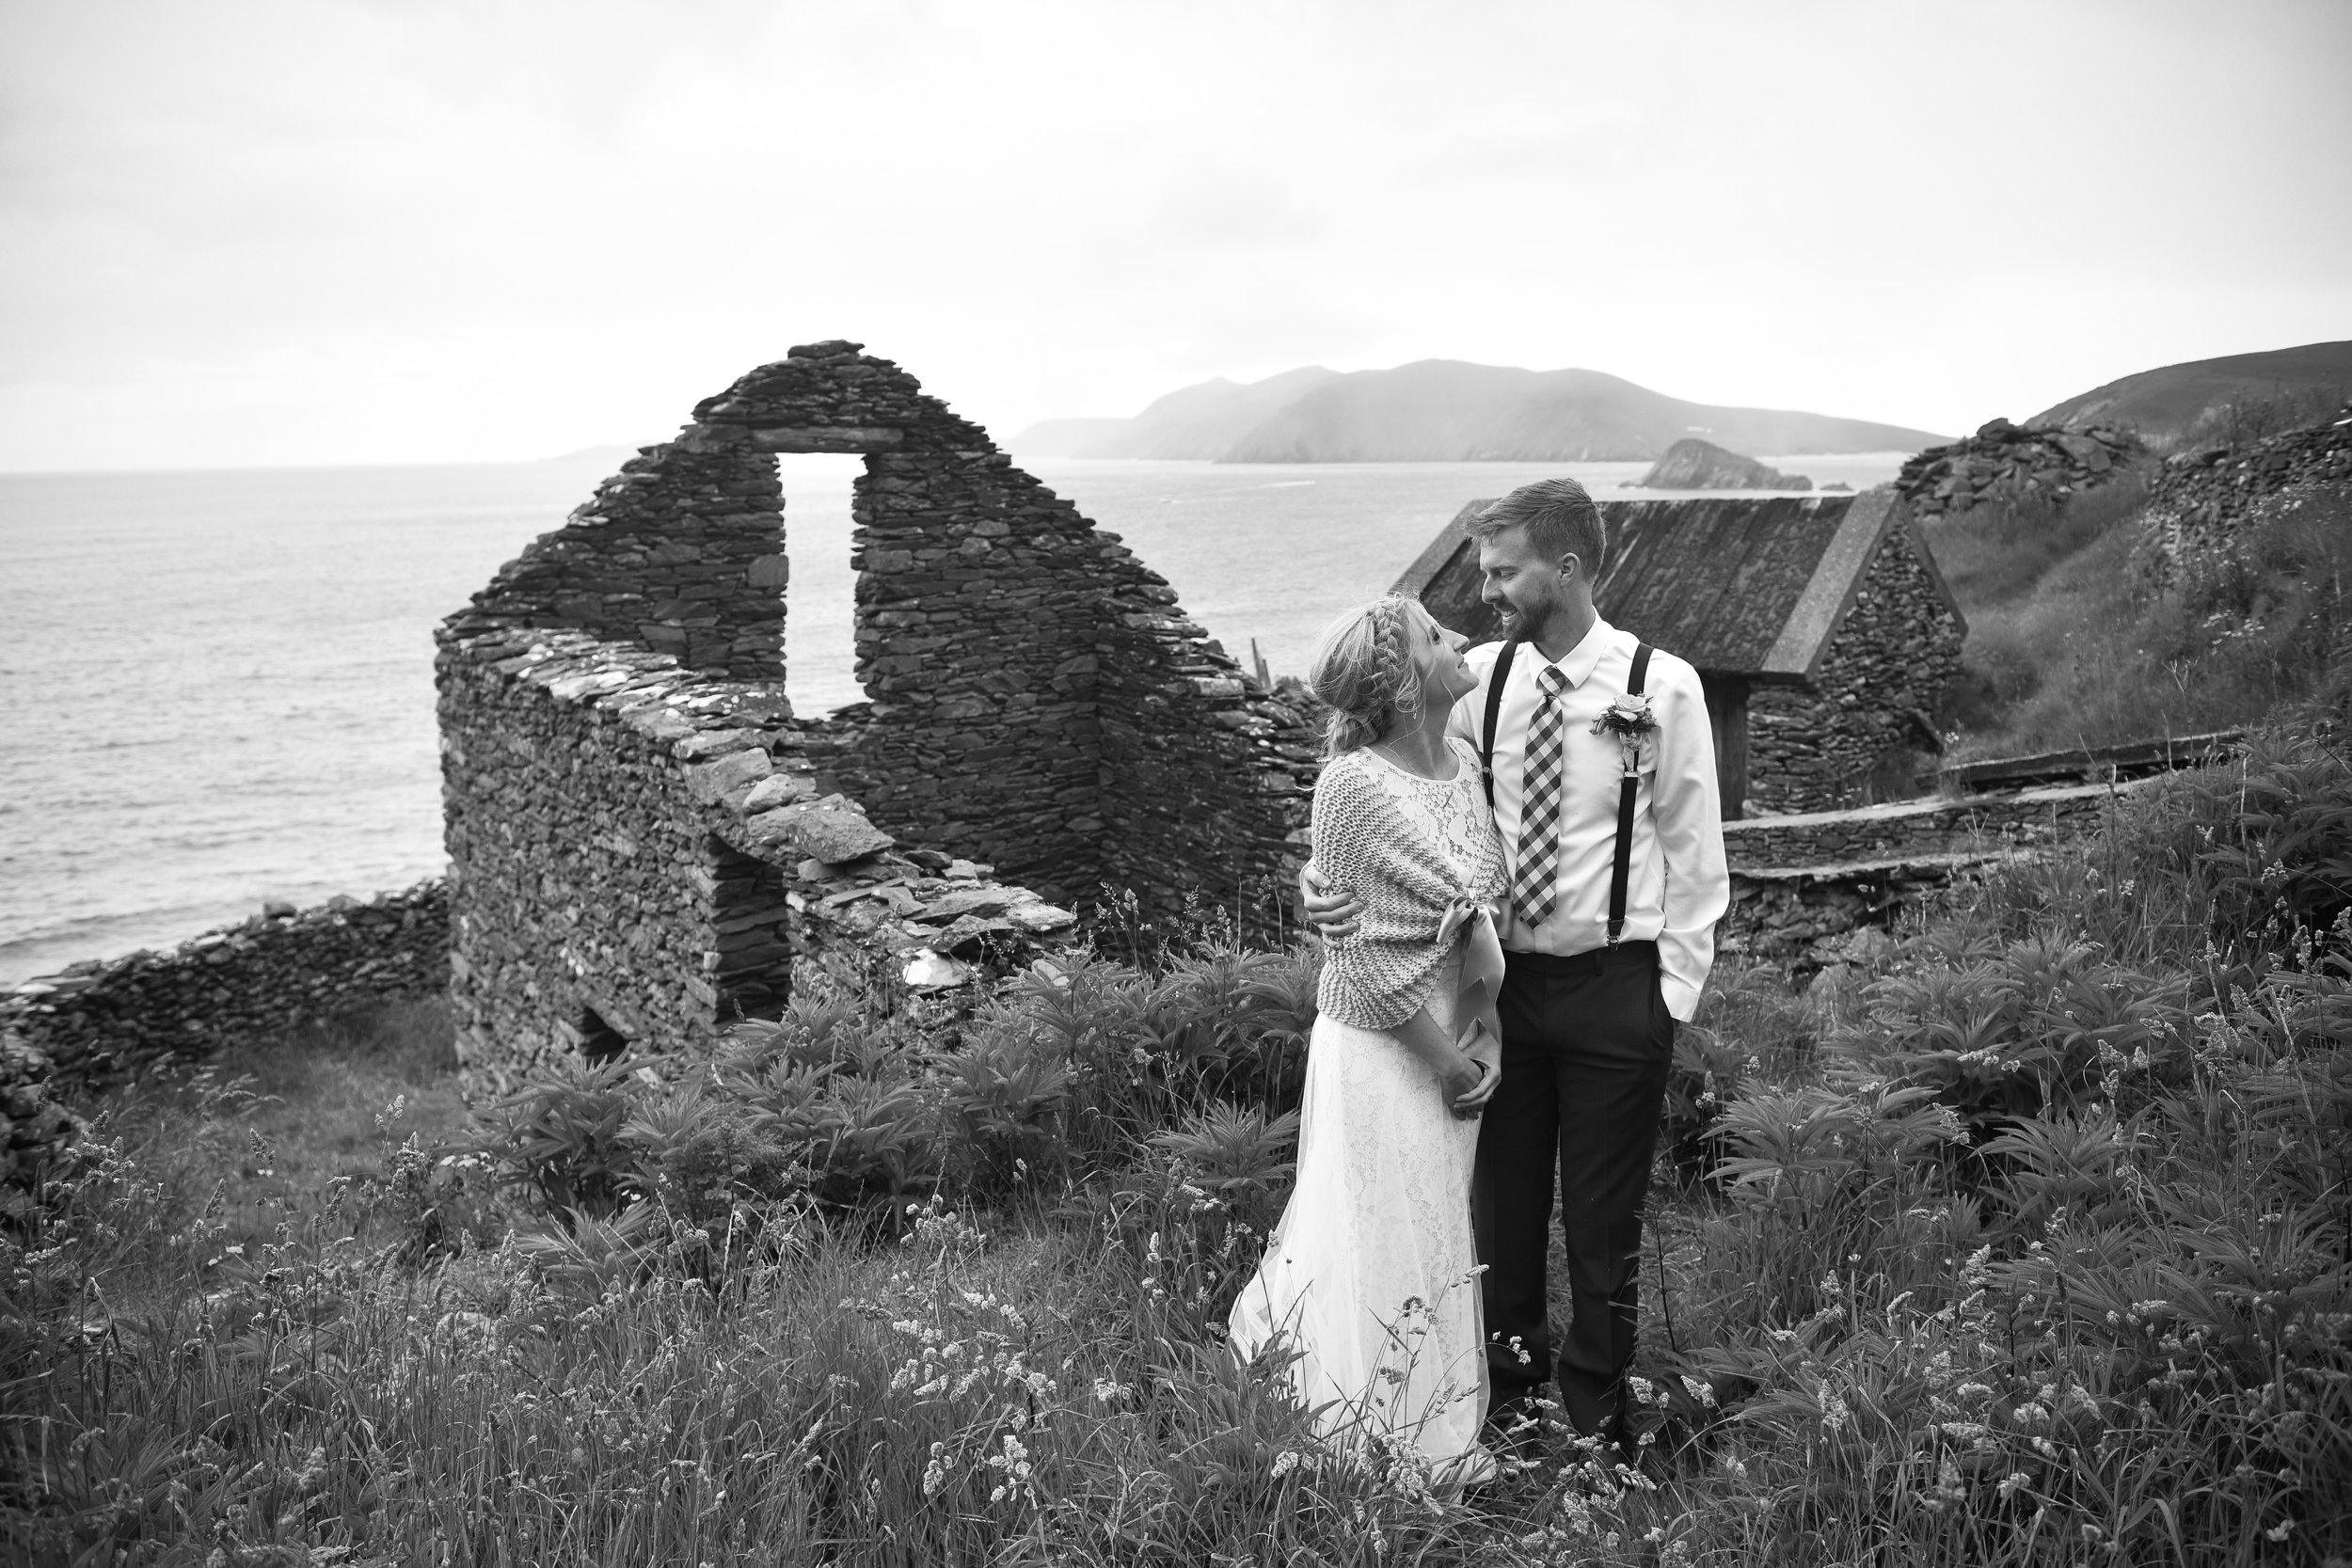 desitnation wedding photography ireland award winning photography dingle elaine kennedy.jpg